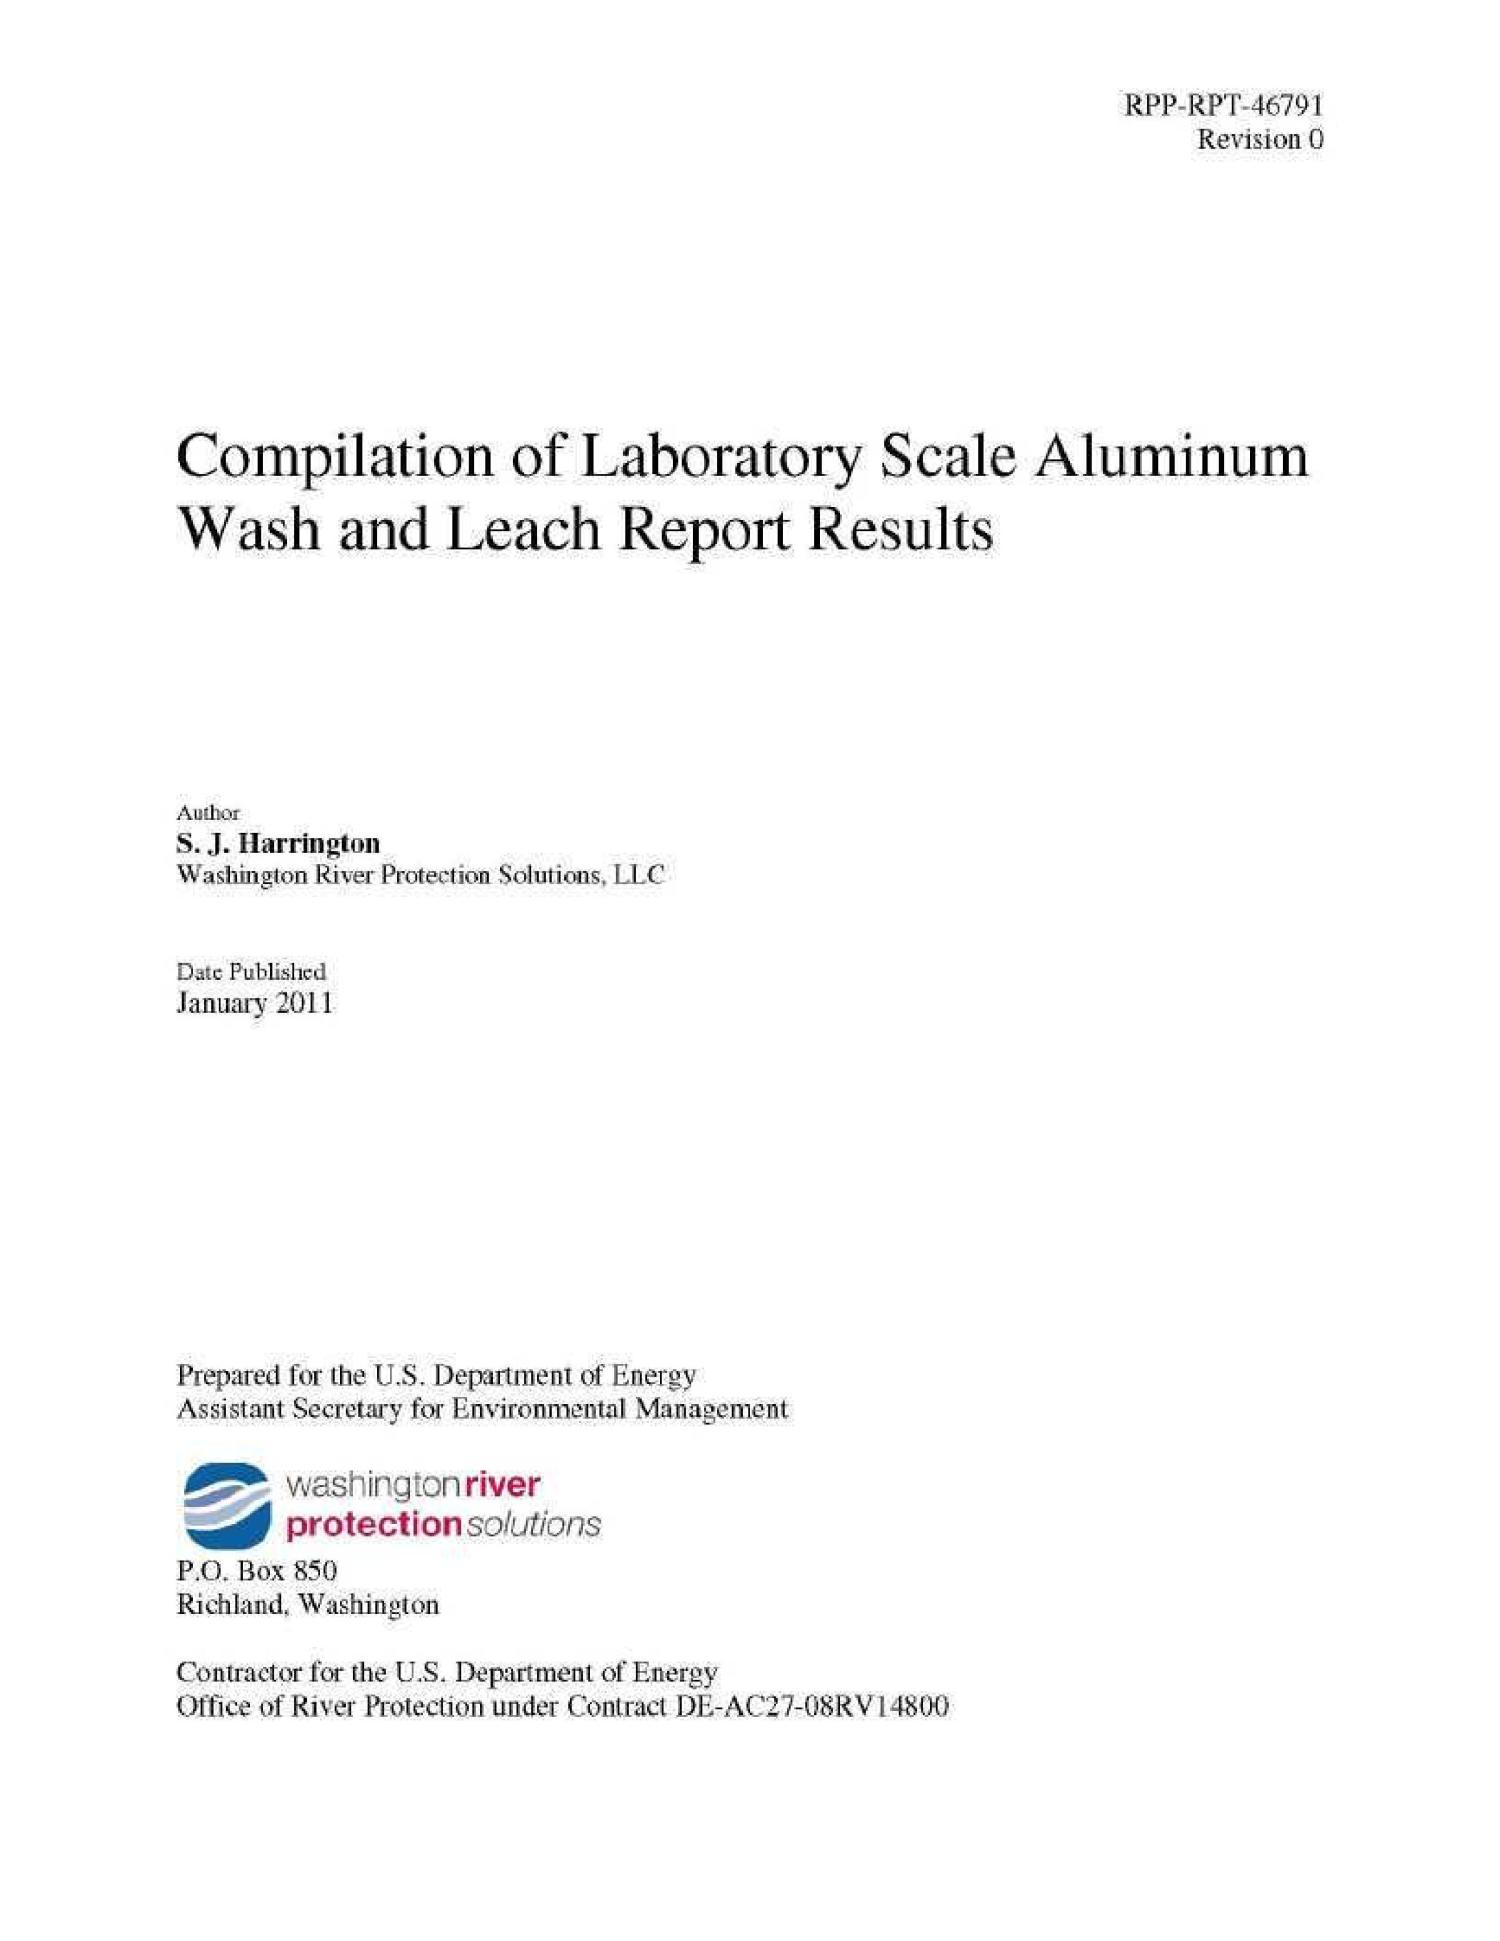 COMPILATION OF LABORATORY SCALE ALUMINUM WASH AND LEACH REPORT RESULTS                                                                                                      [Sequence #]: 2 of 133